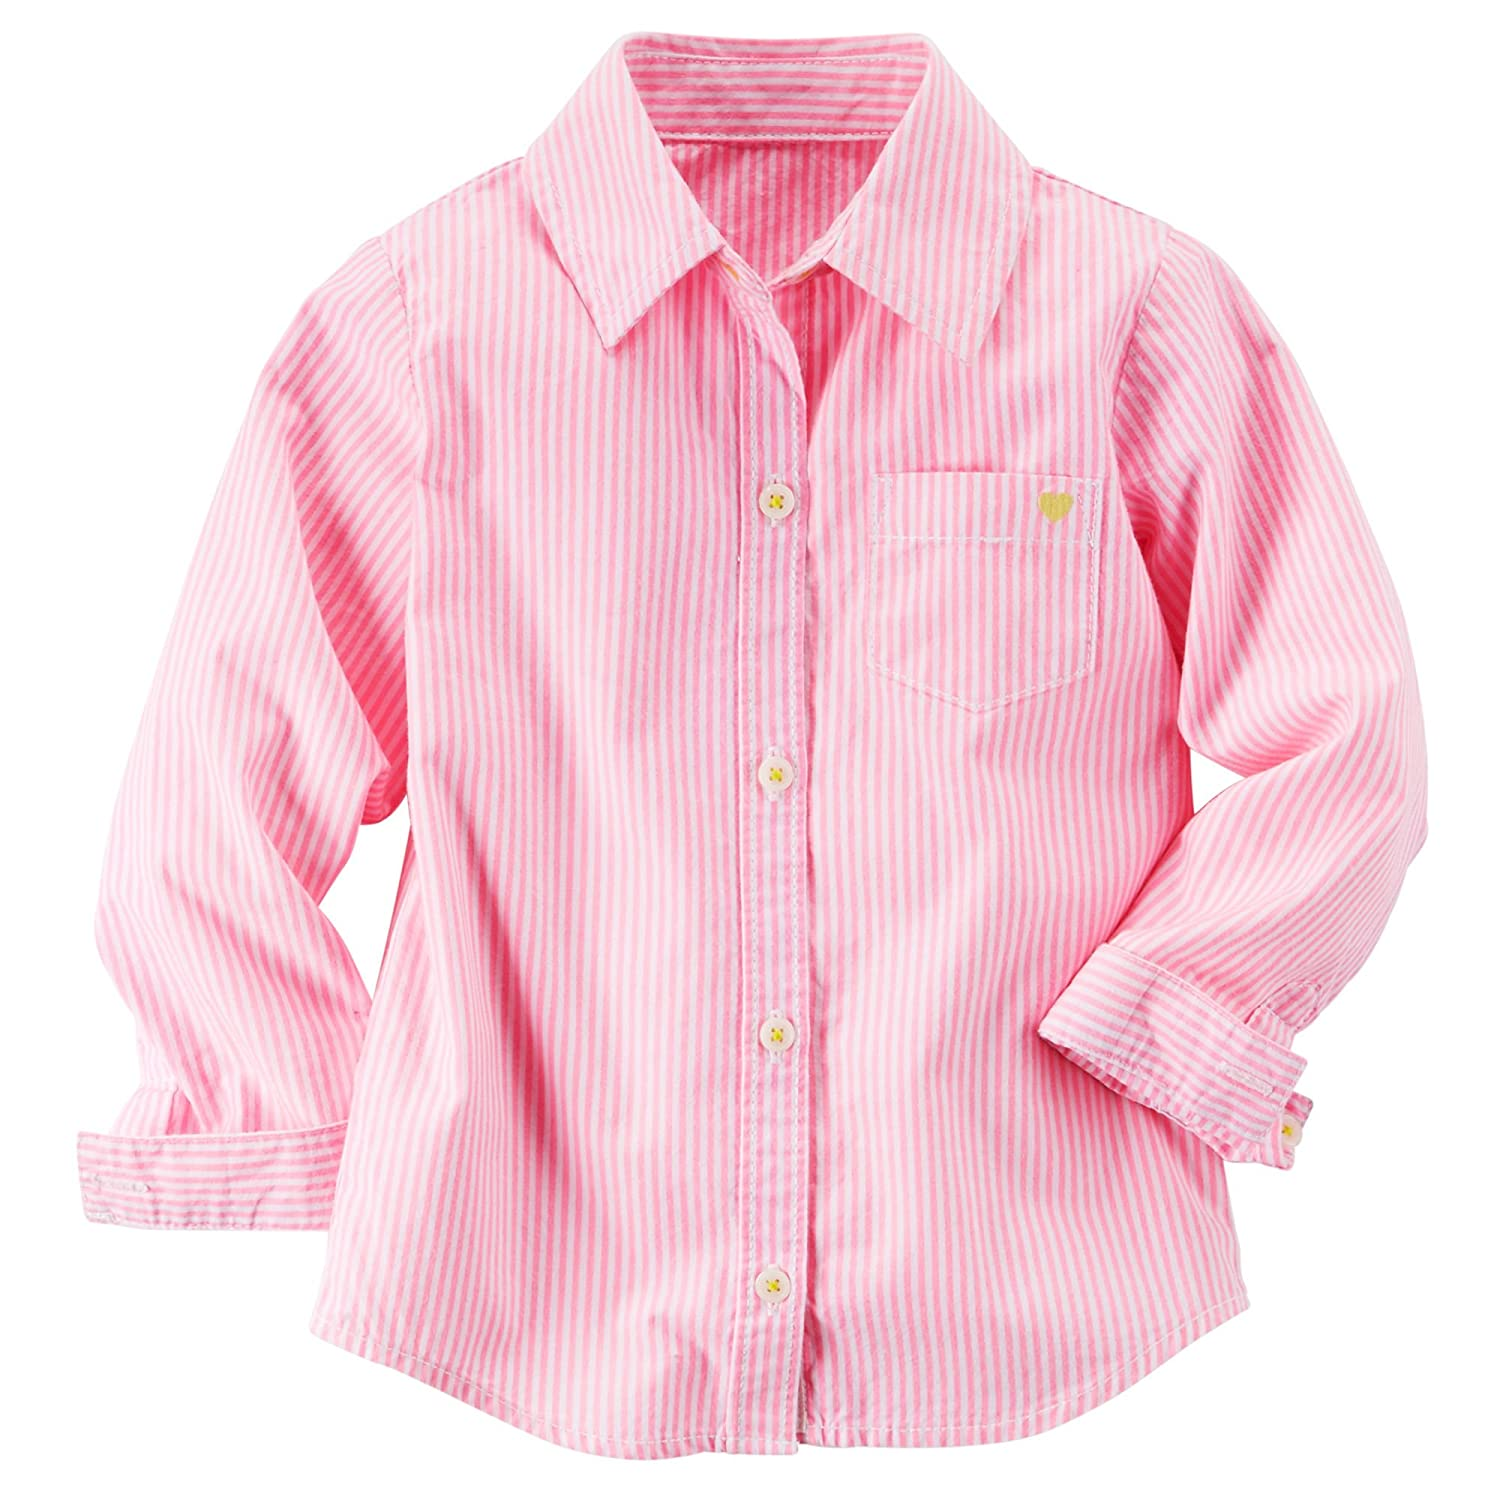 Carters Little Girls Long Sleeves Pinstripe Shirt 9m, Pink